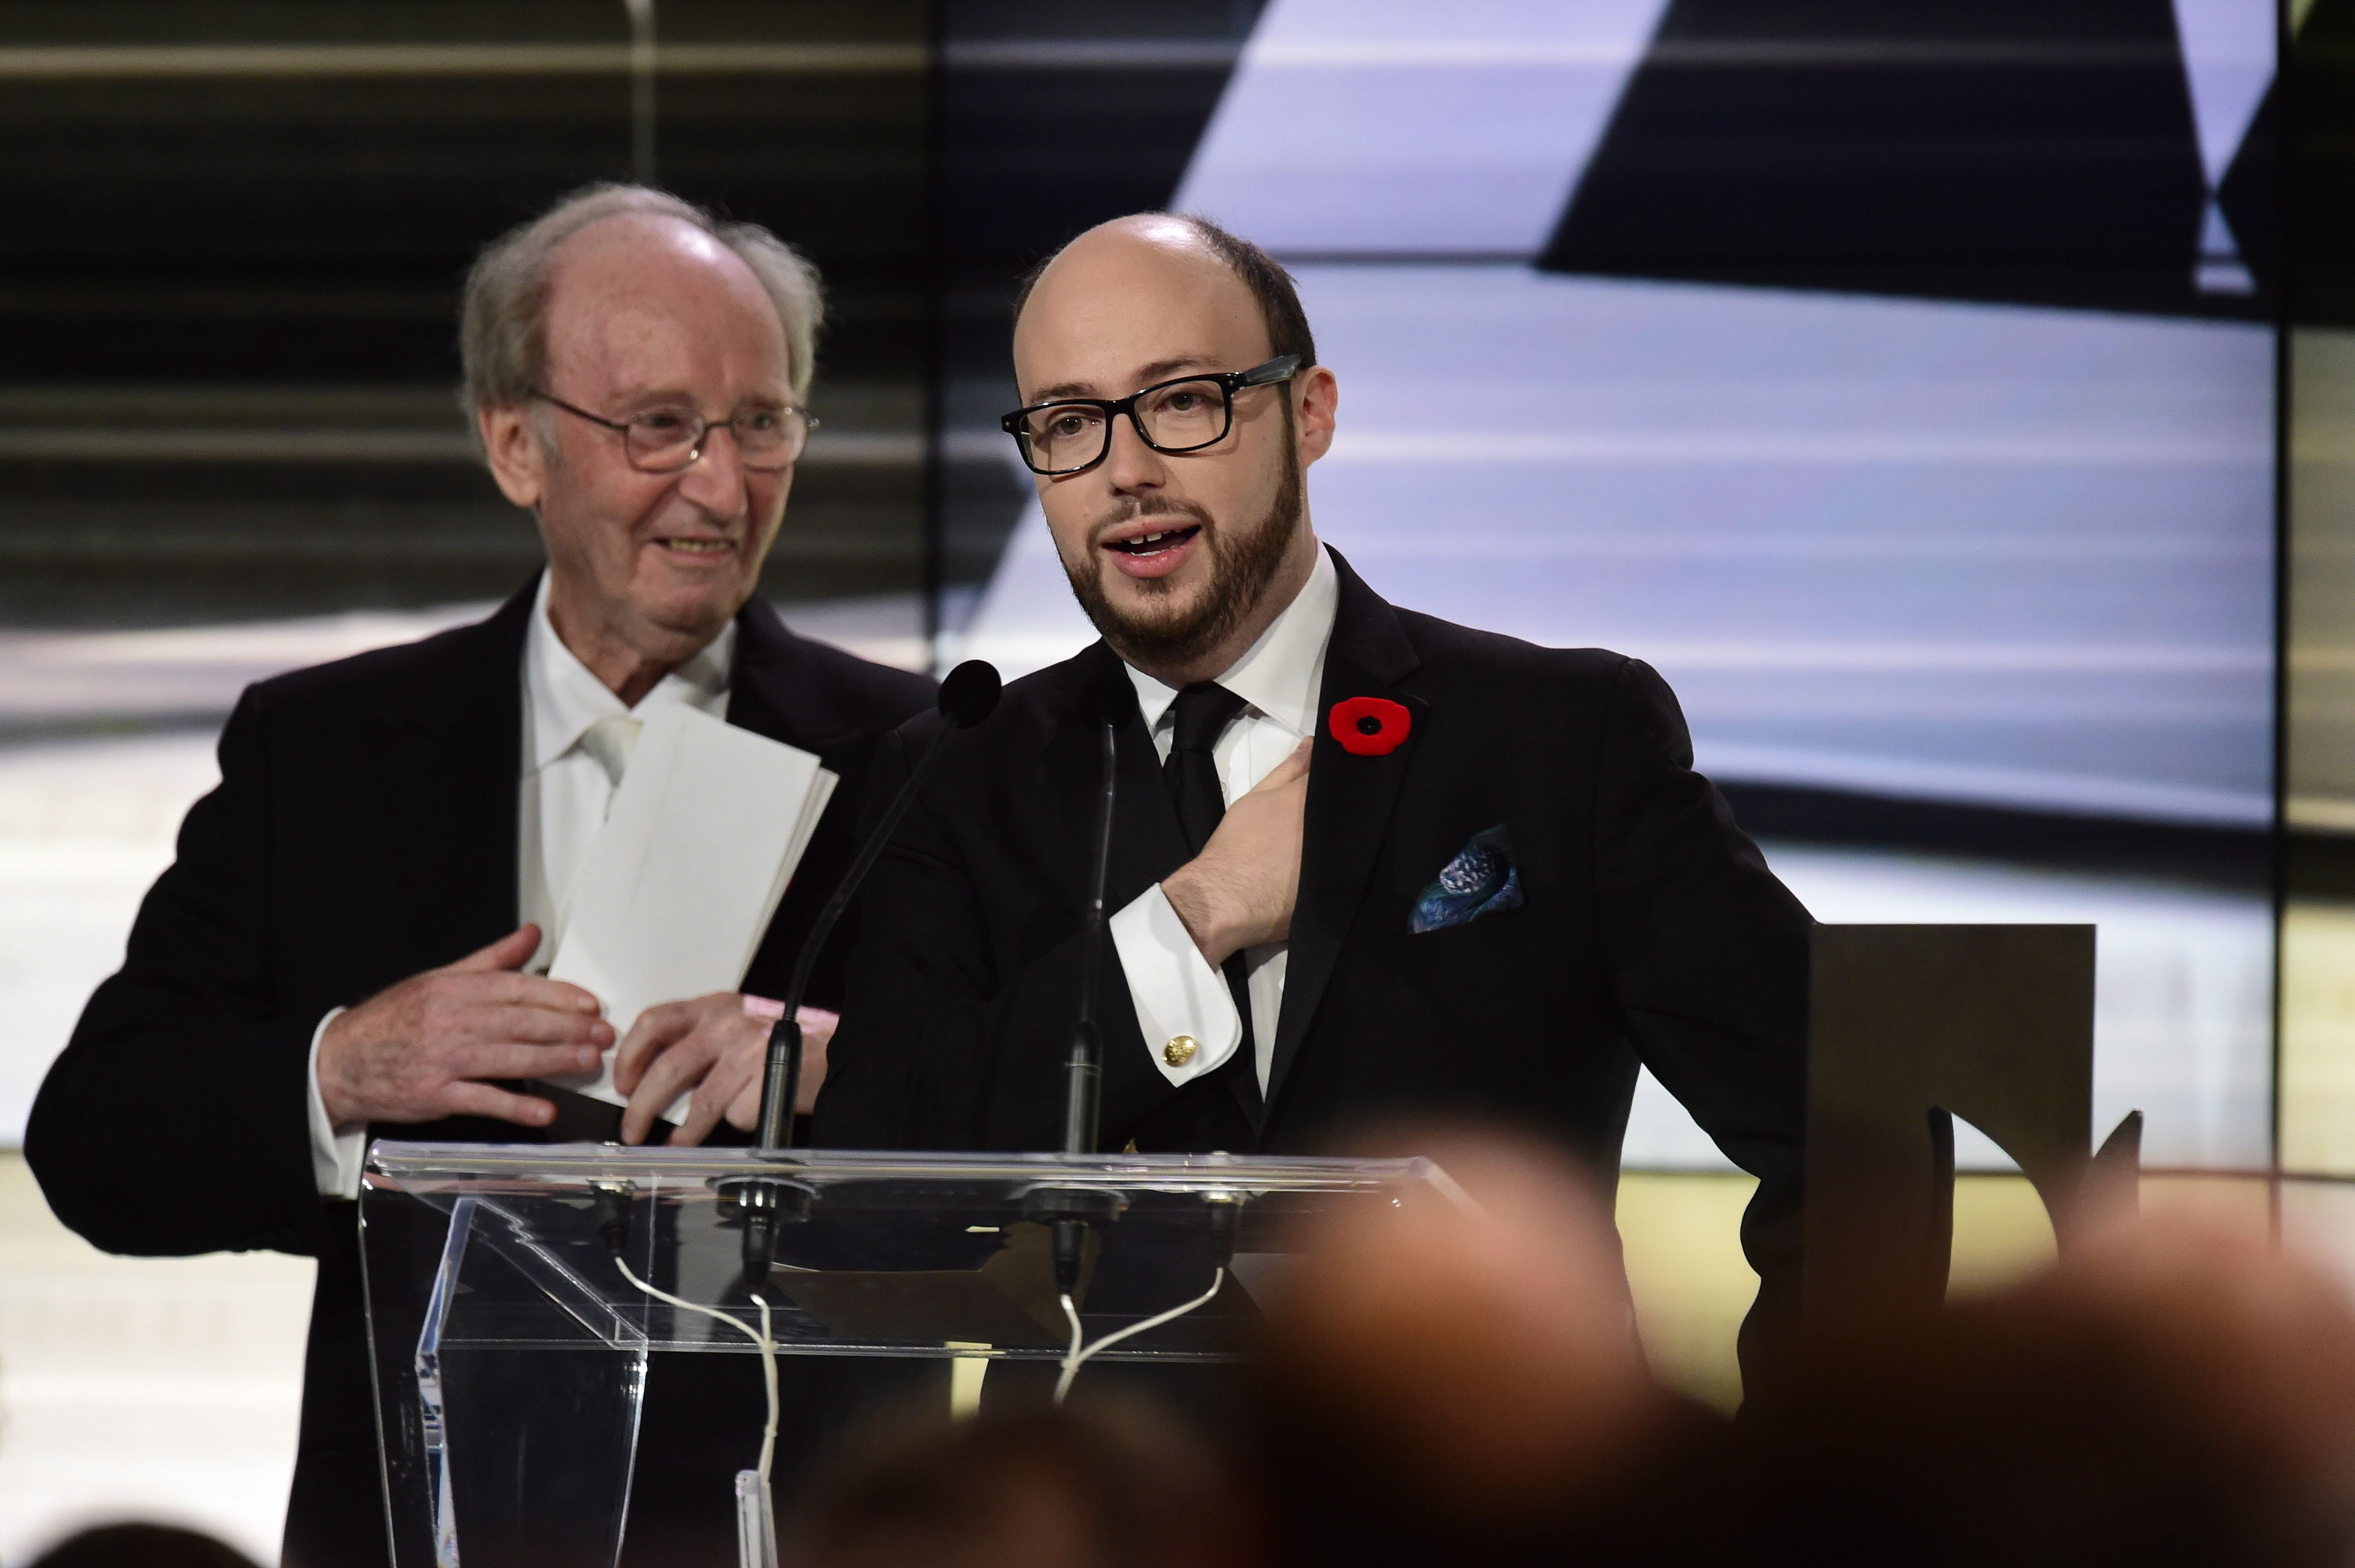 Author Sean Michaels gives his acceptance speech after winning the 2014 Giller Prize in Toronto, Monday, Nov.10, 2014. Giller Prize founder Jack Rabinovitch is pictured at left. (Frank Gunn/The Canadian Press)